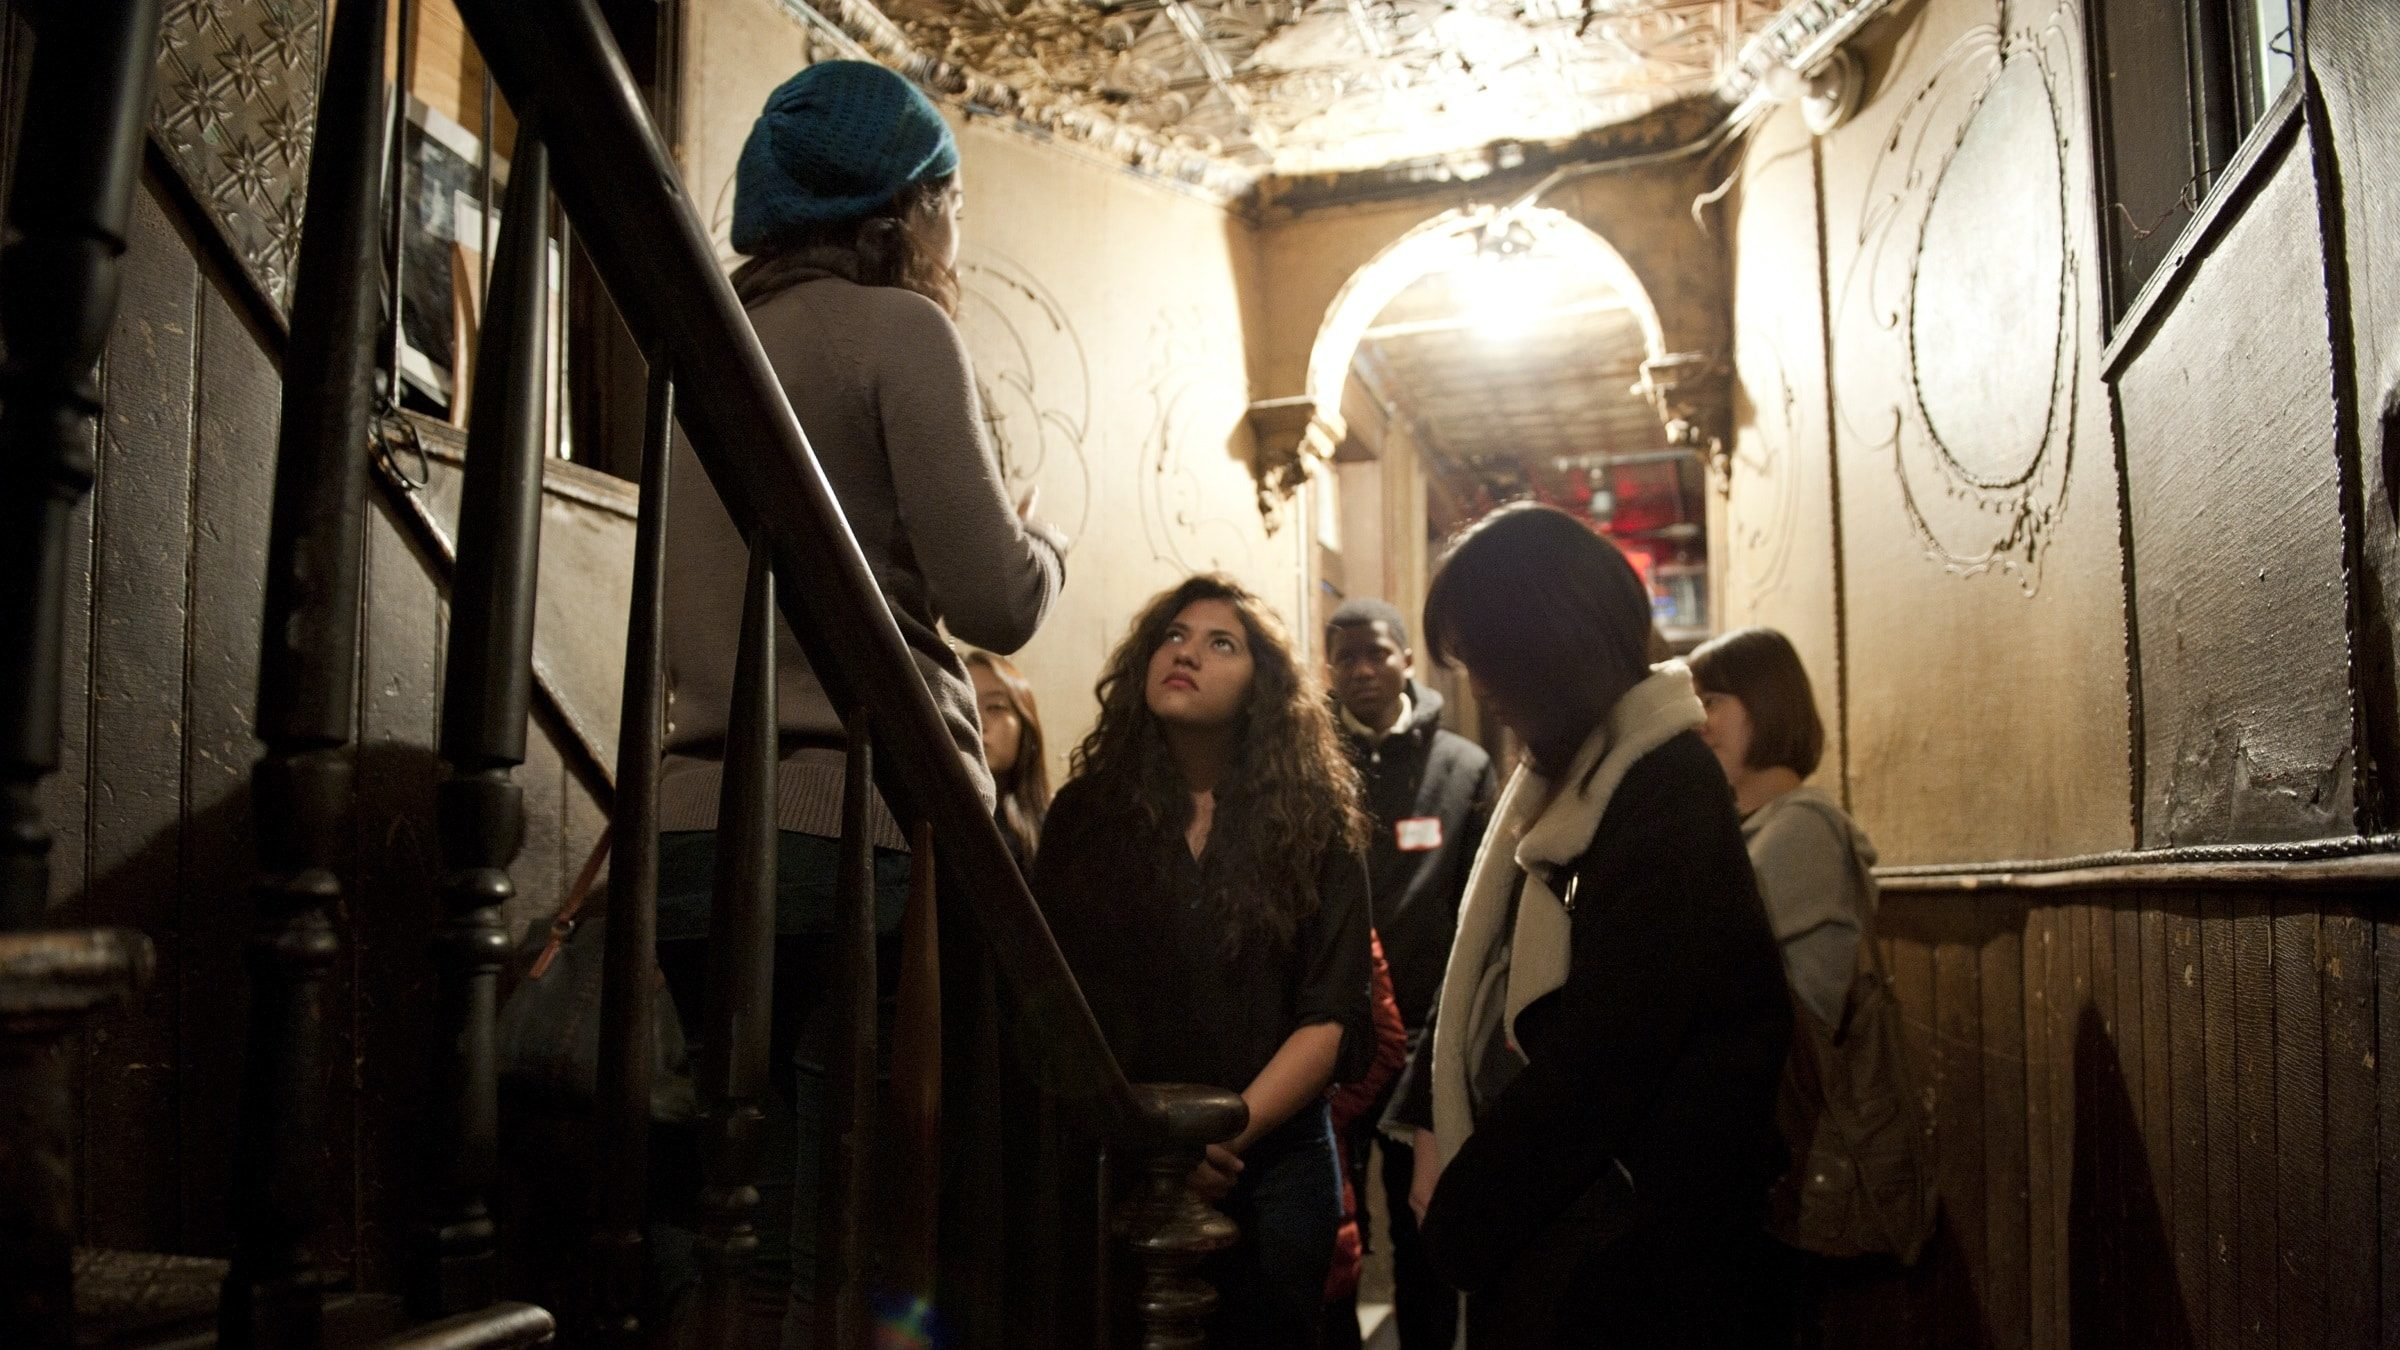 A tour group in a historic tenement at the Tenement Museum